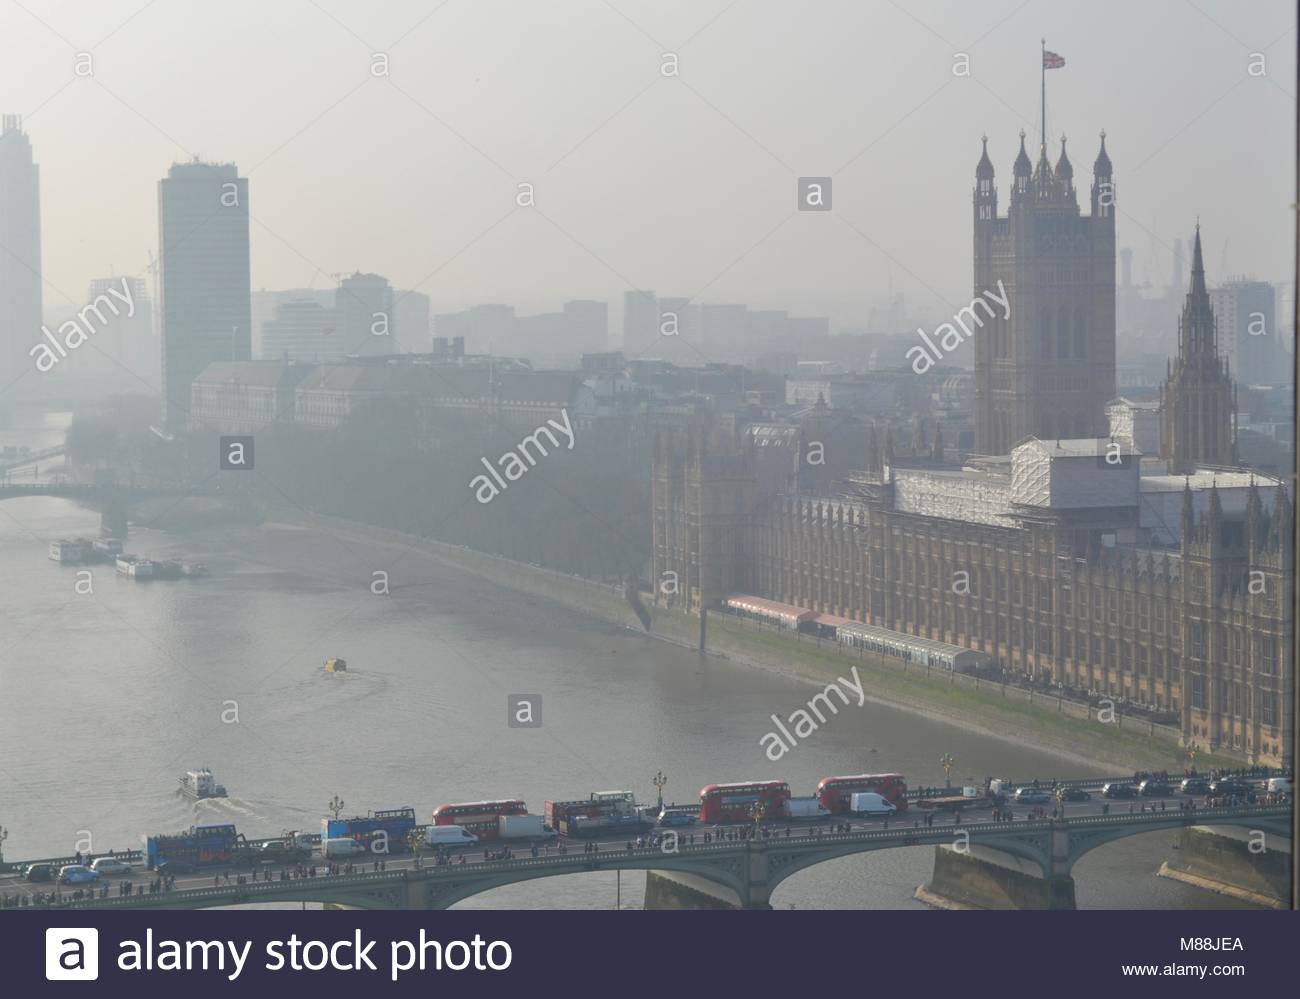 this is a photo of London,England covered in fog. it has the thames and the houses of parliament with the english - Stock Image